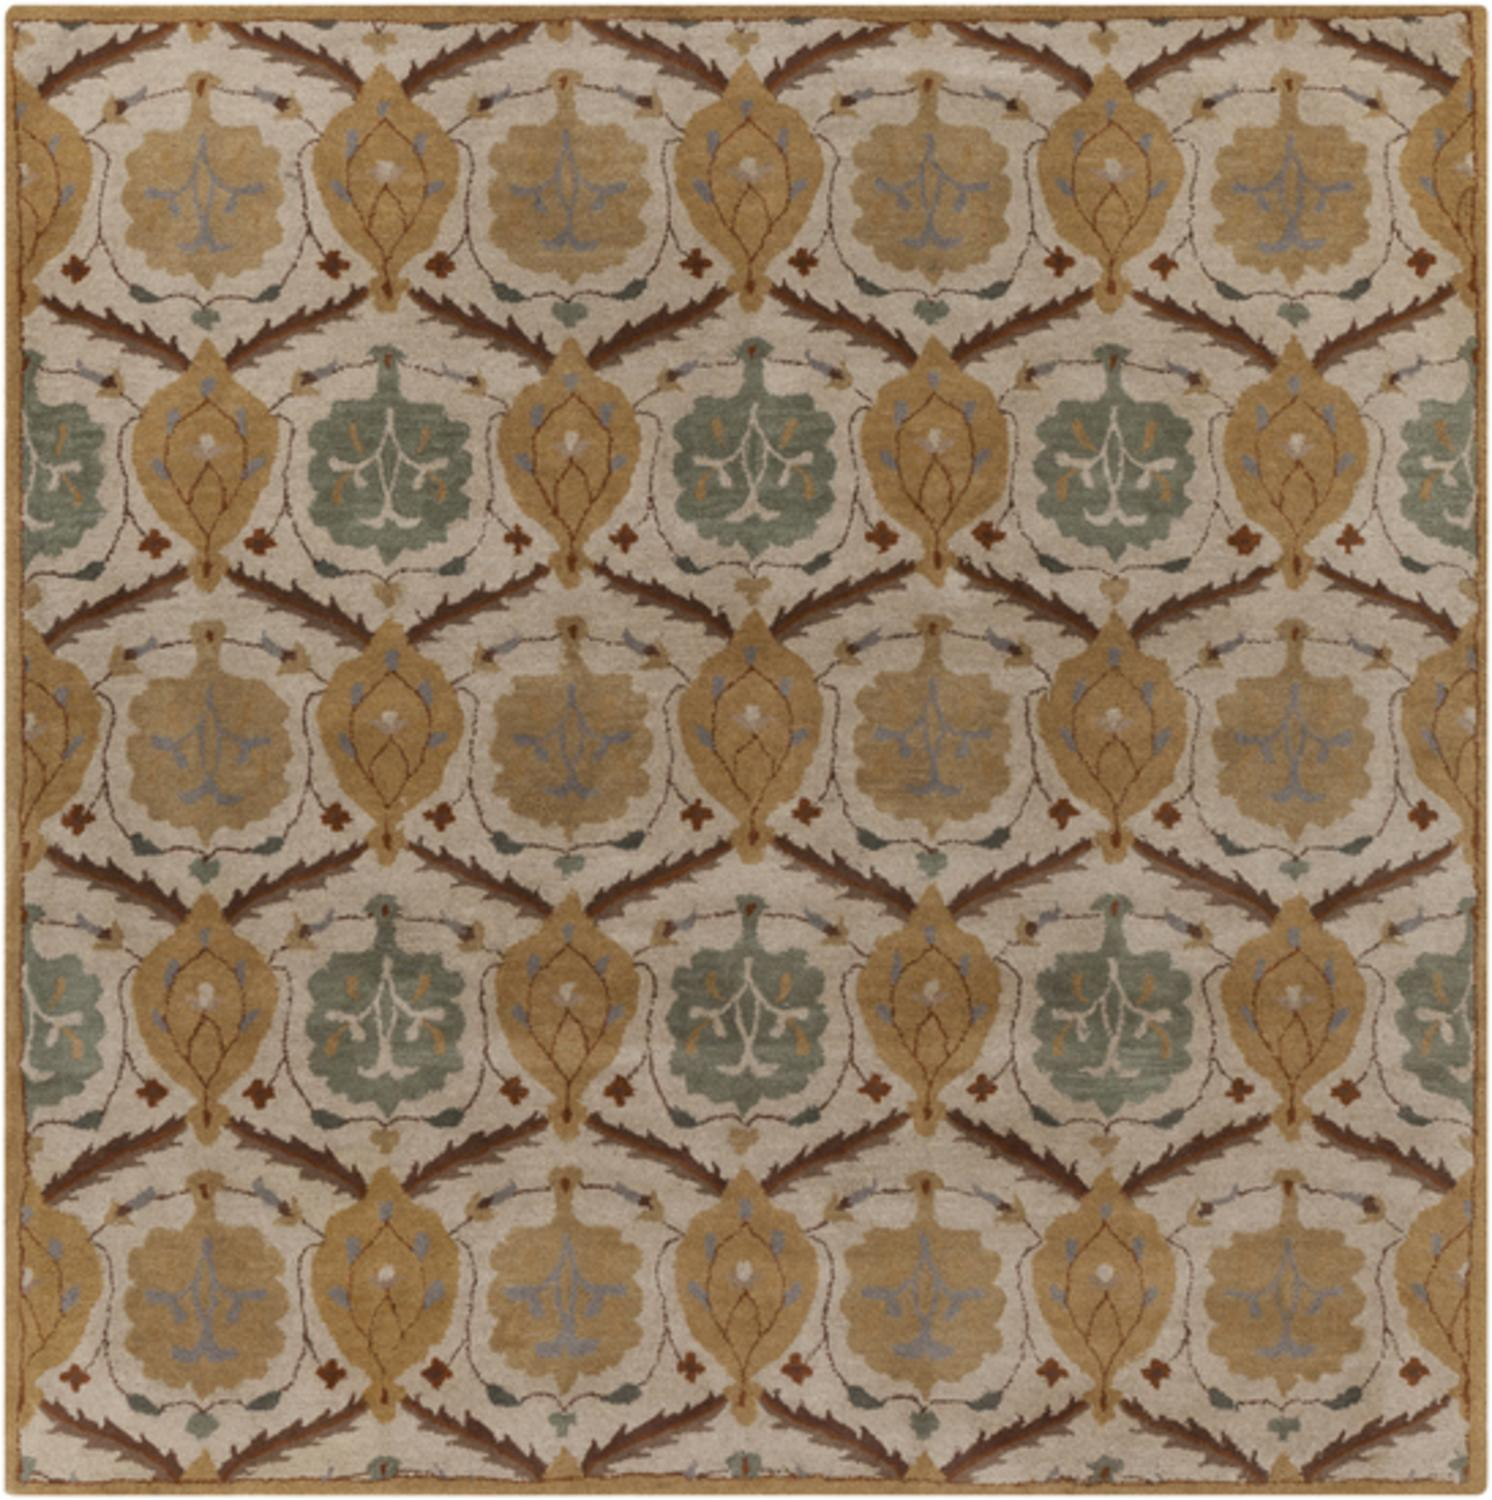 9.75' x 9.75' Costantina Khaki, Gray and Brown Hand Tufted Square Wool Throw Rug